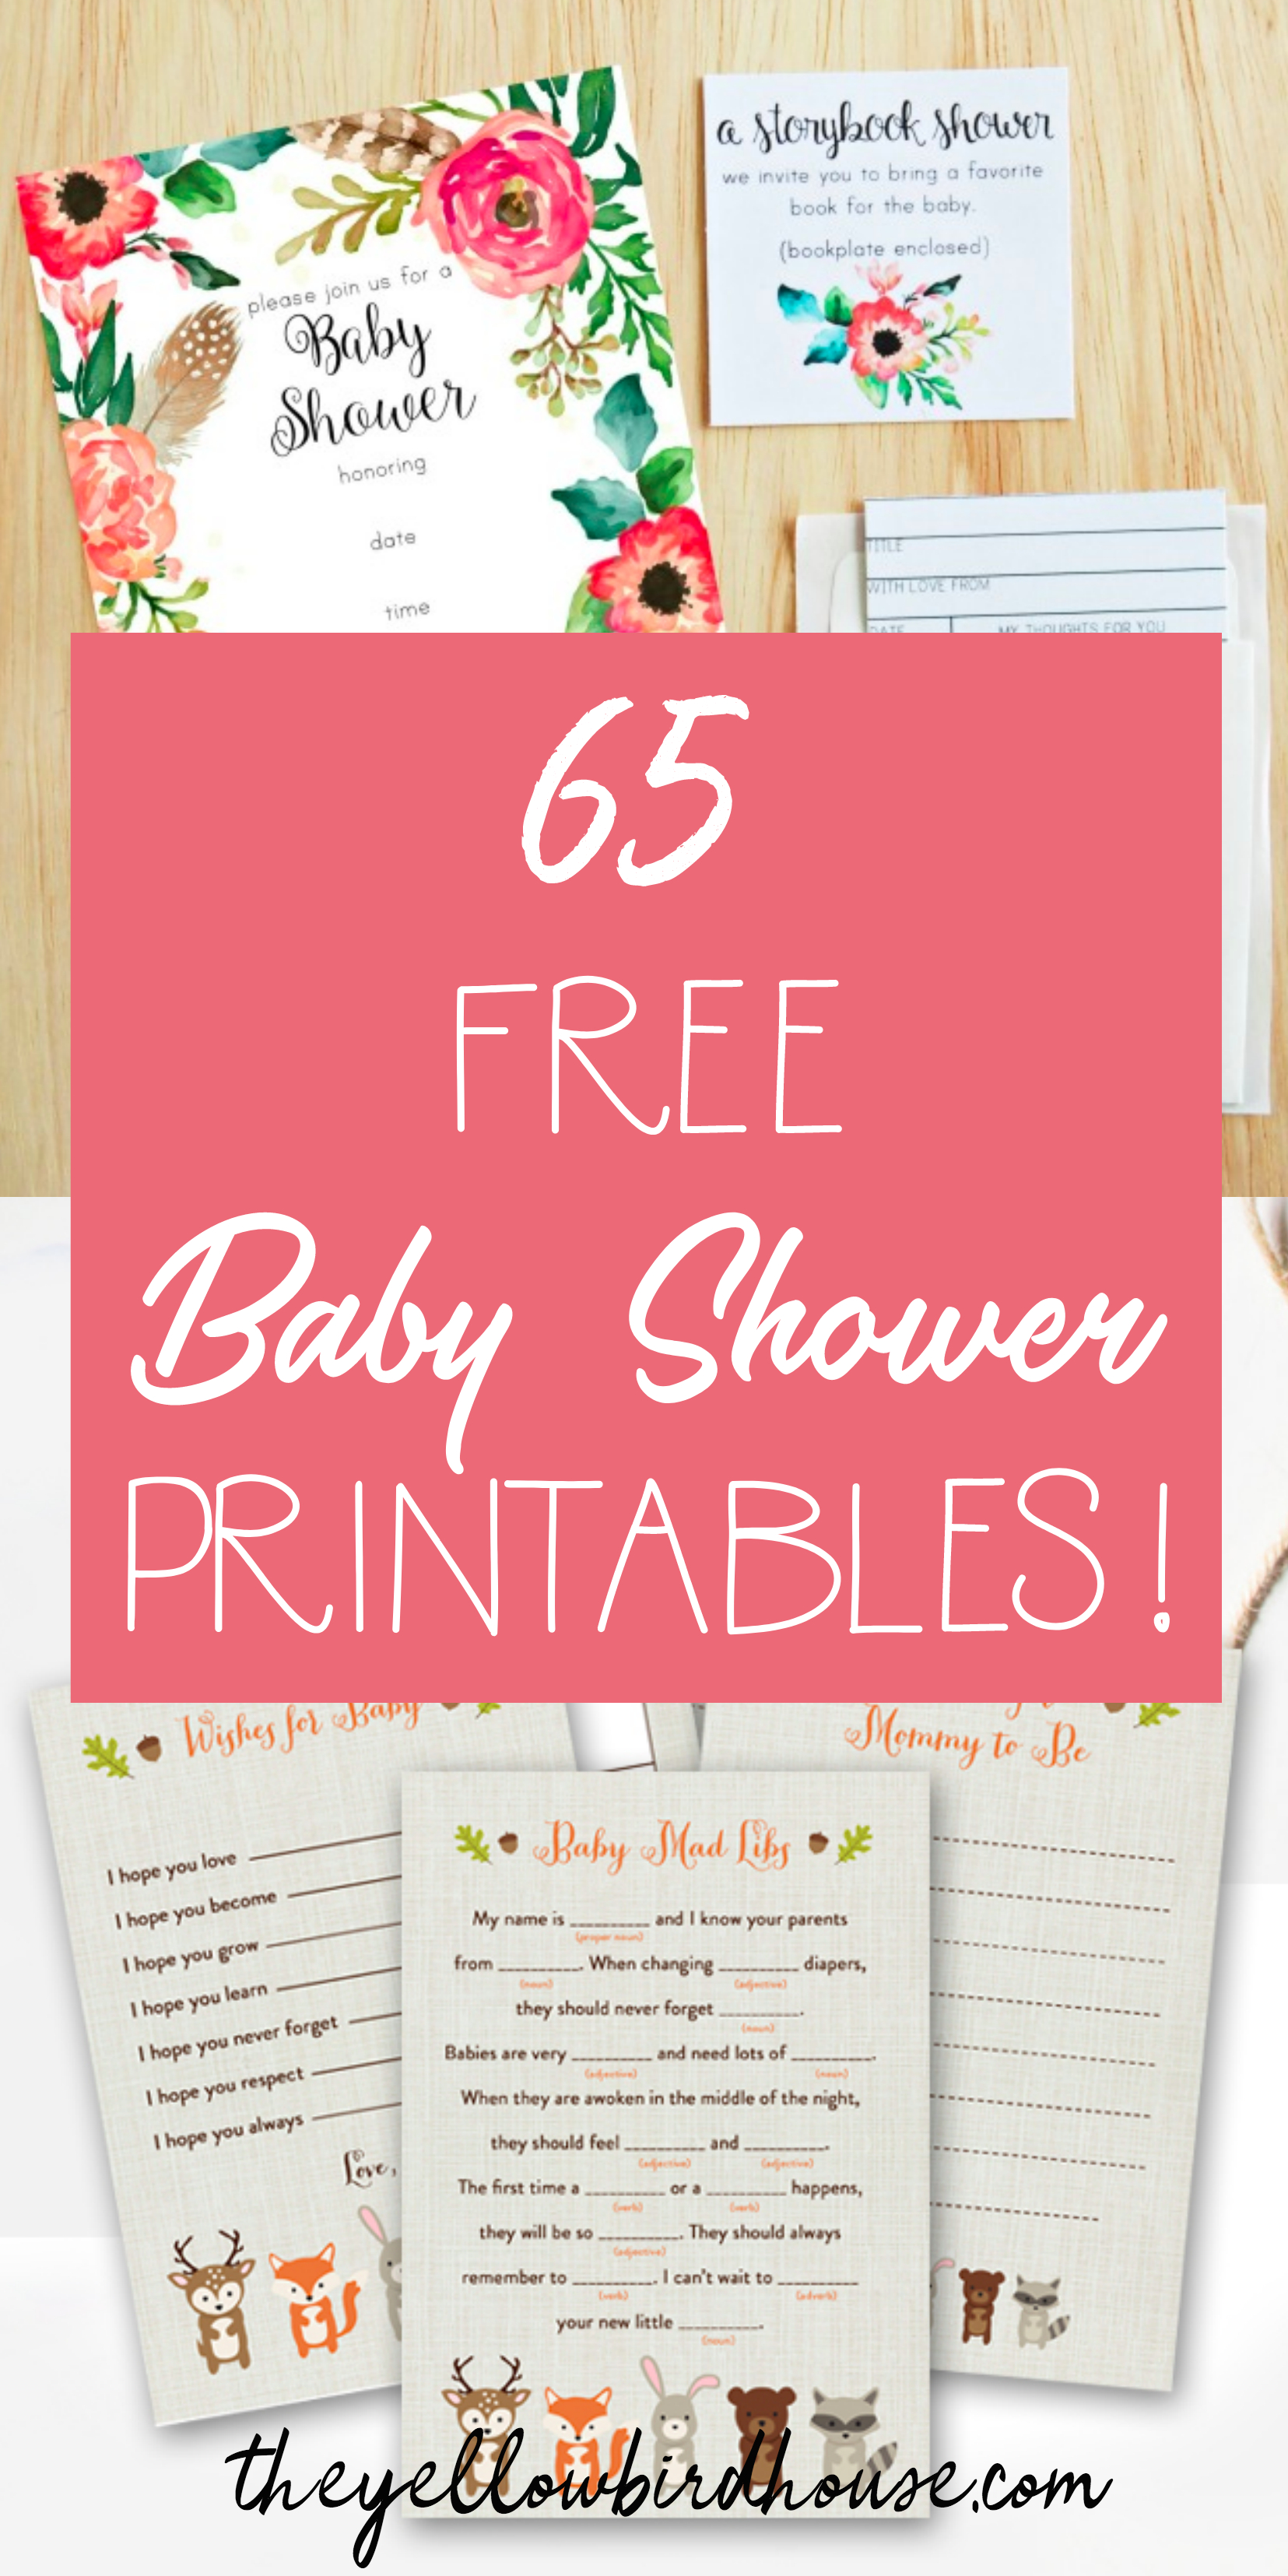 65 Free Baby Shower Printables For An Adorable Party - Free Printable Ready To Pop Labels